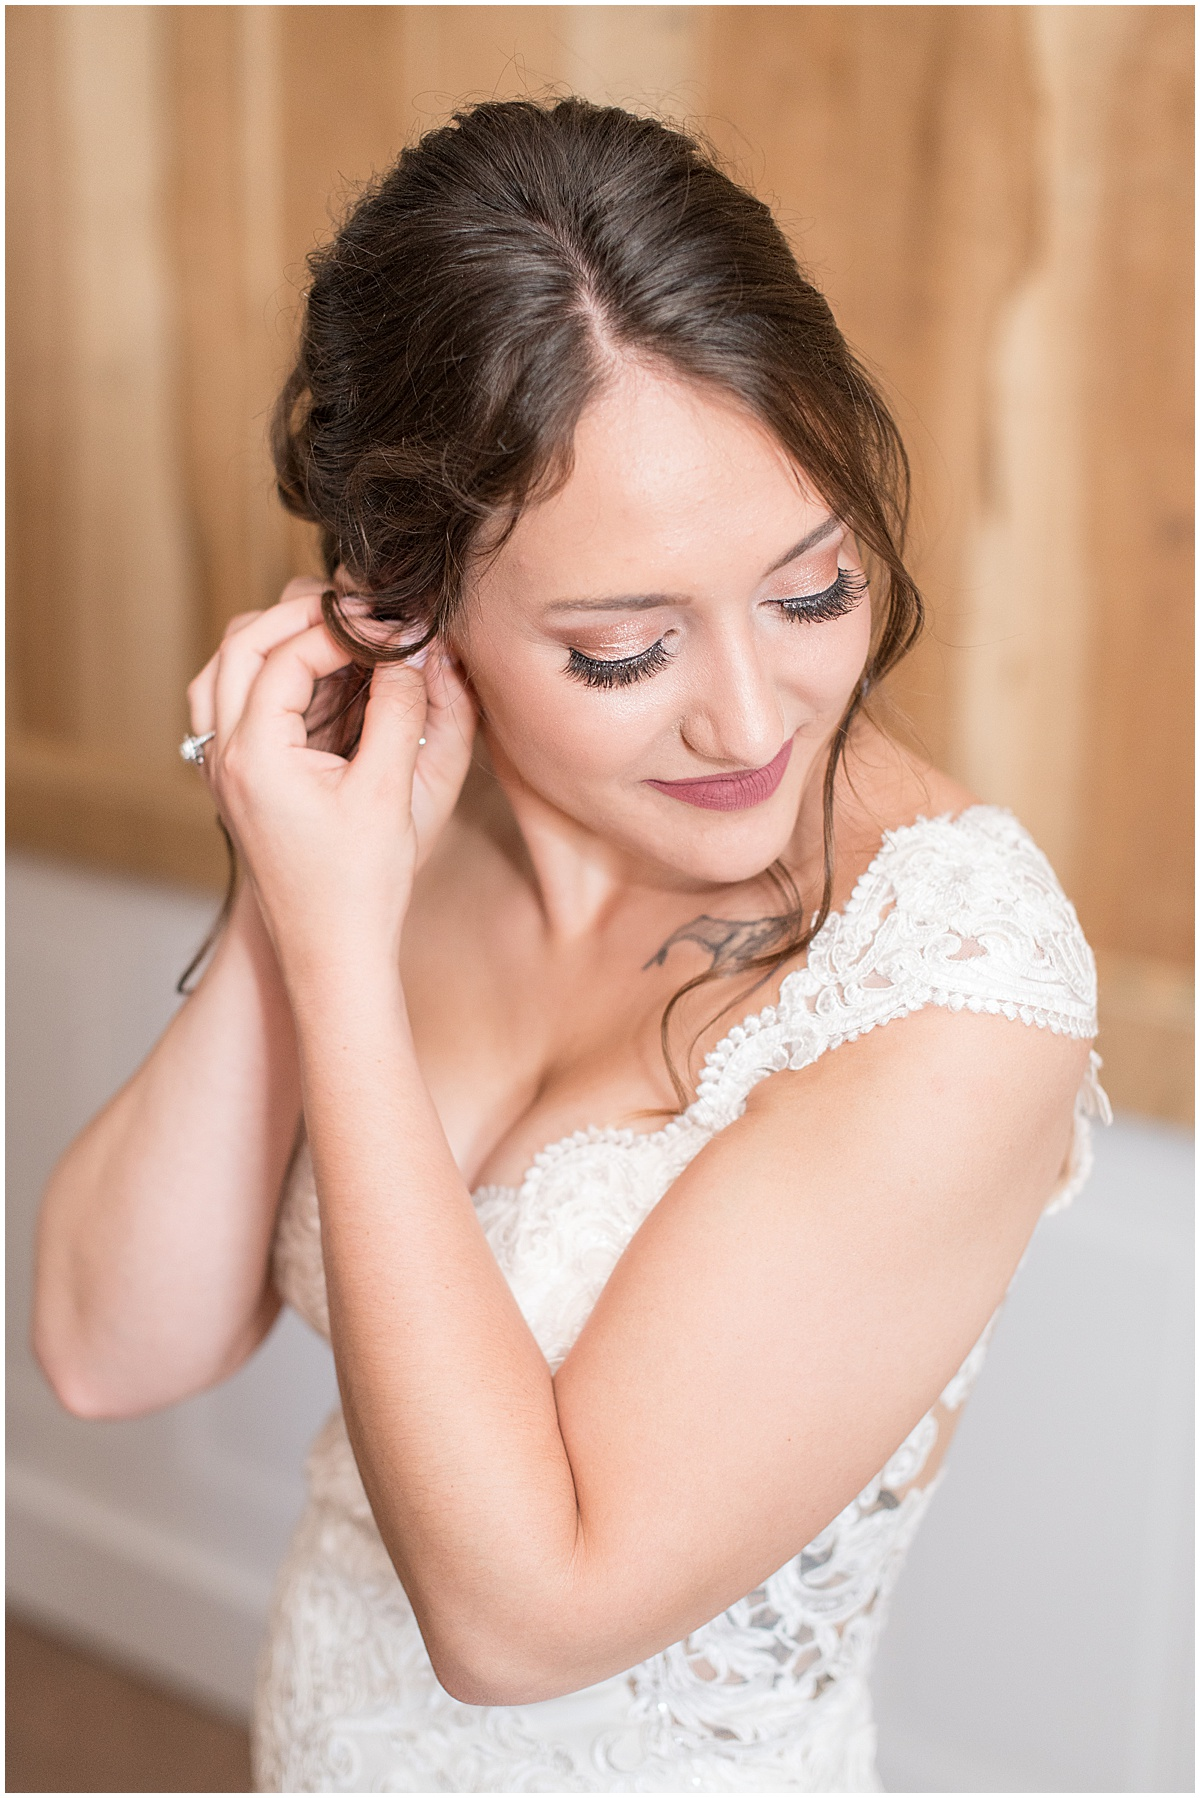 Bride getting ready for wedding at Hunny Creek Haven in Waldron, Indiana